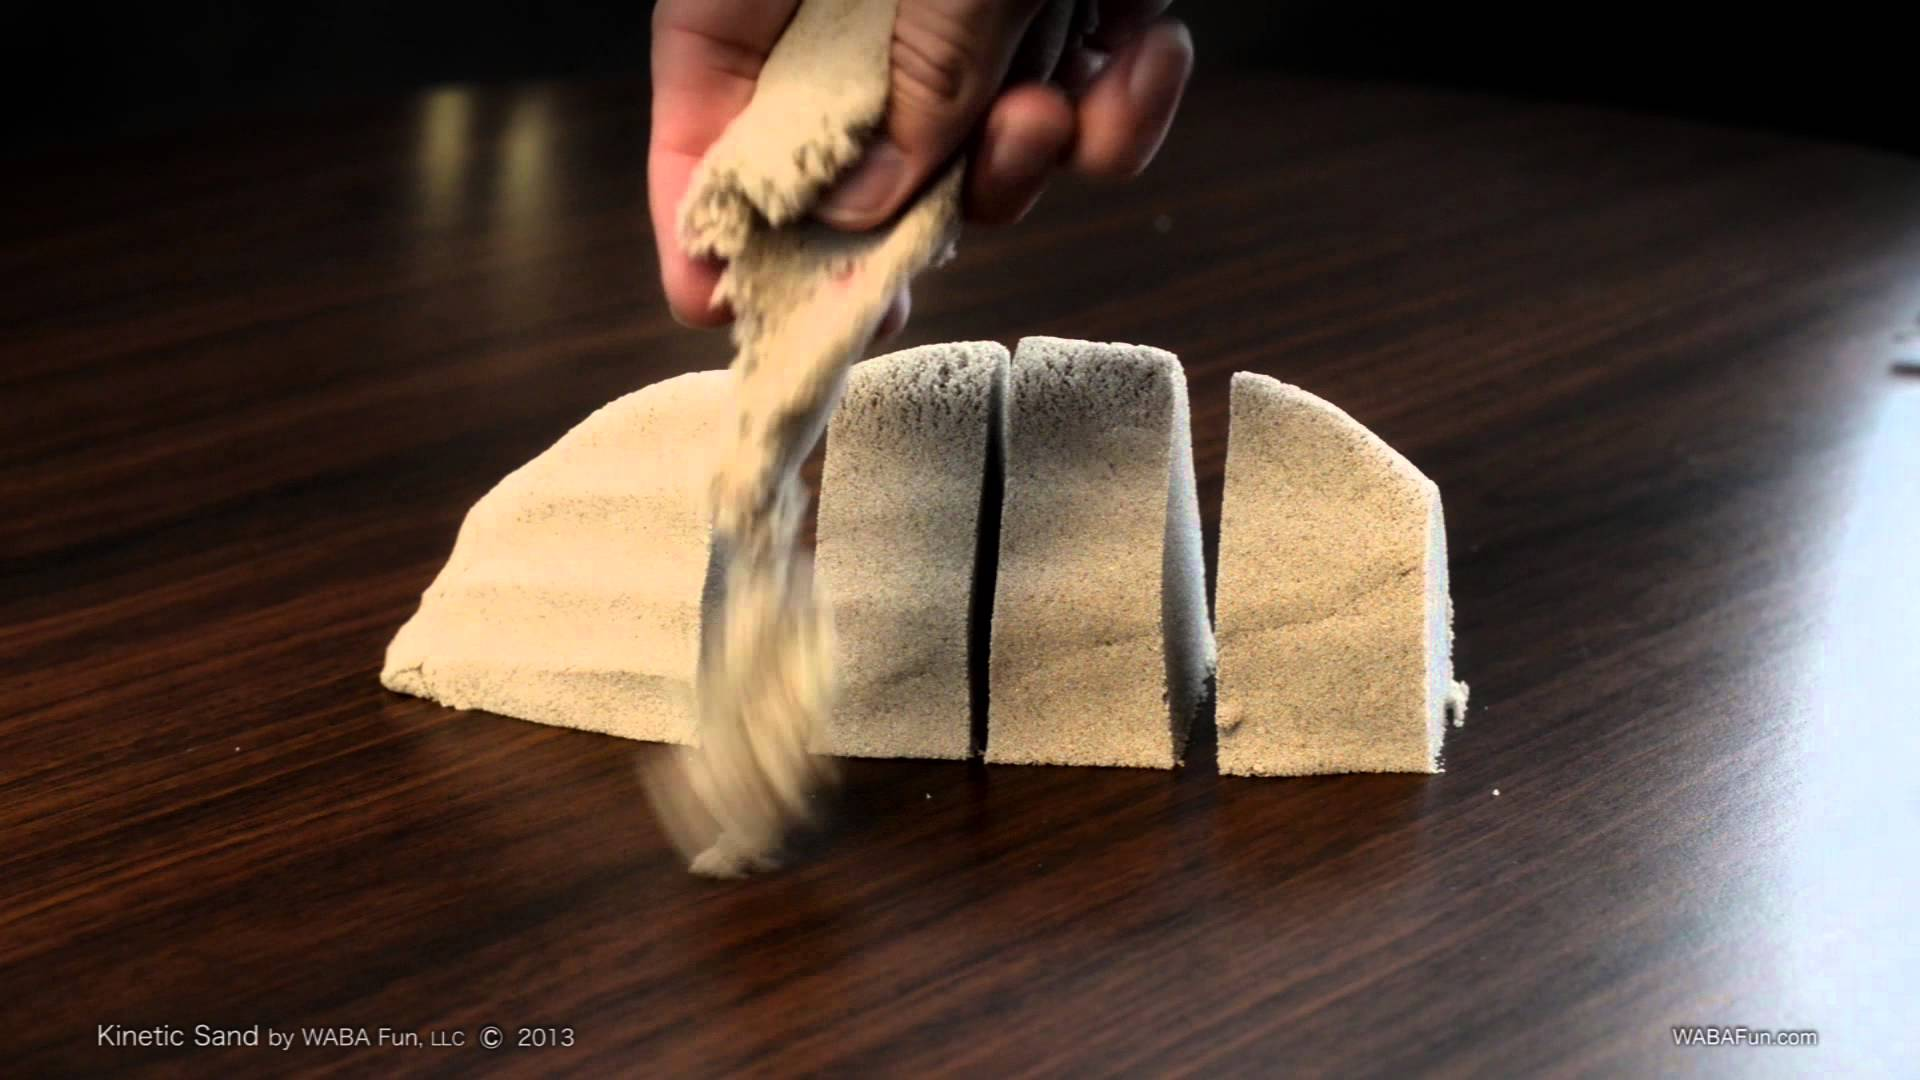 Kinetic Sand, A Fun Material That Looks Like Squishy Sand